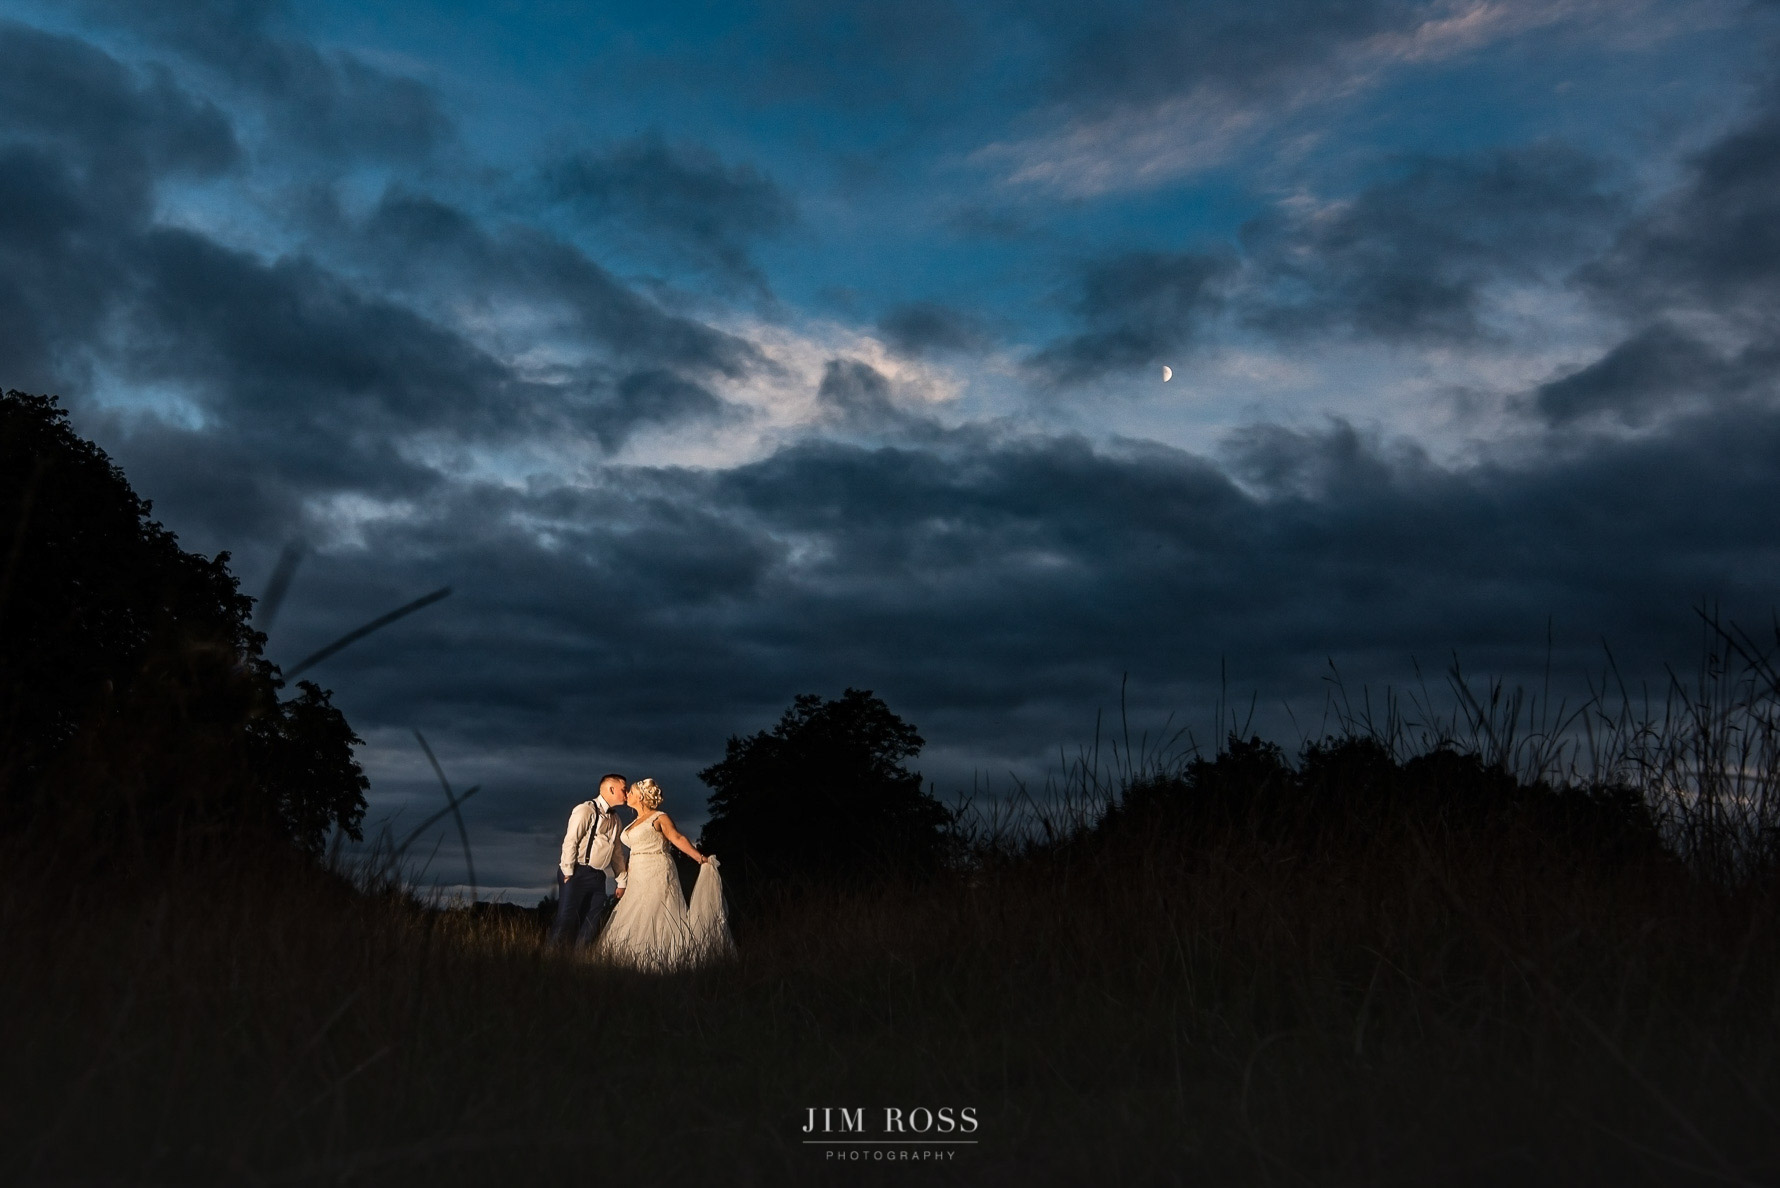 Night portrait of couple with dramatic sky